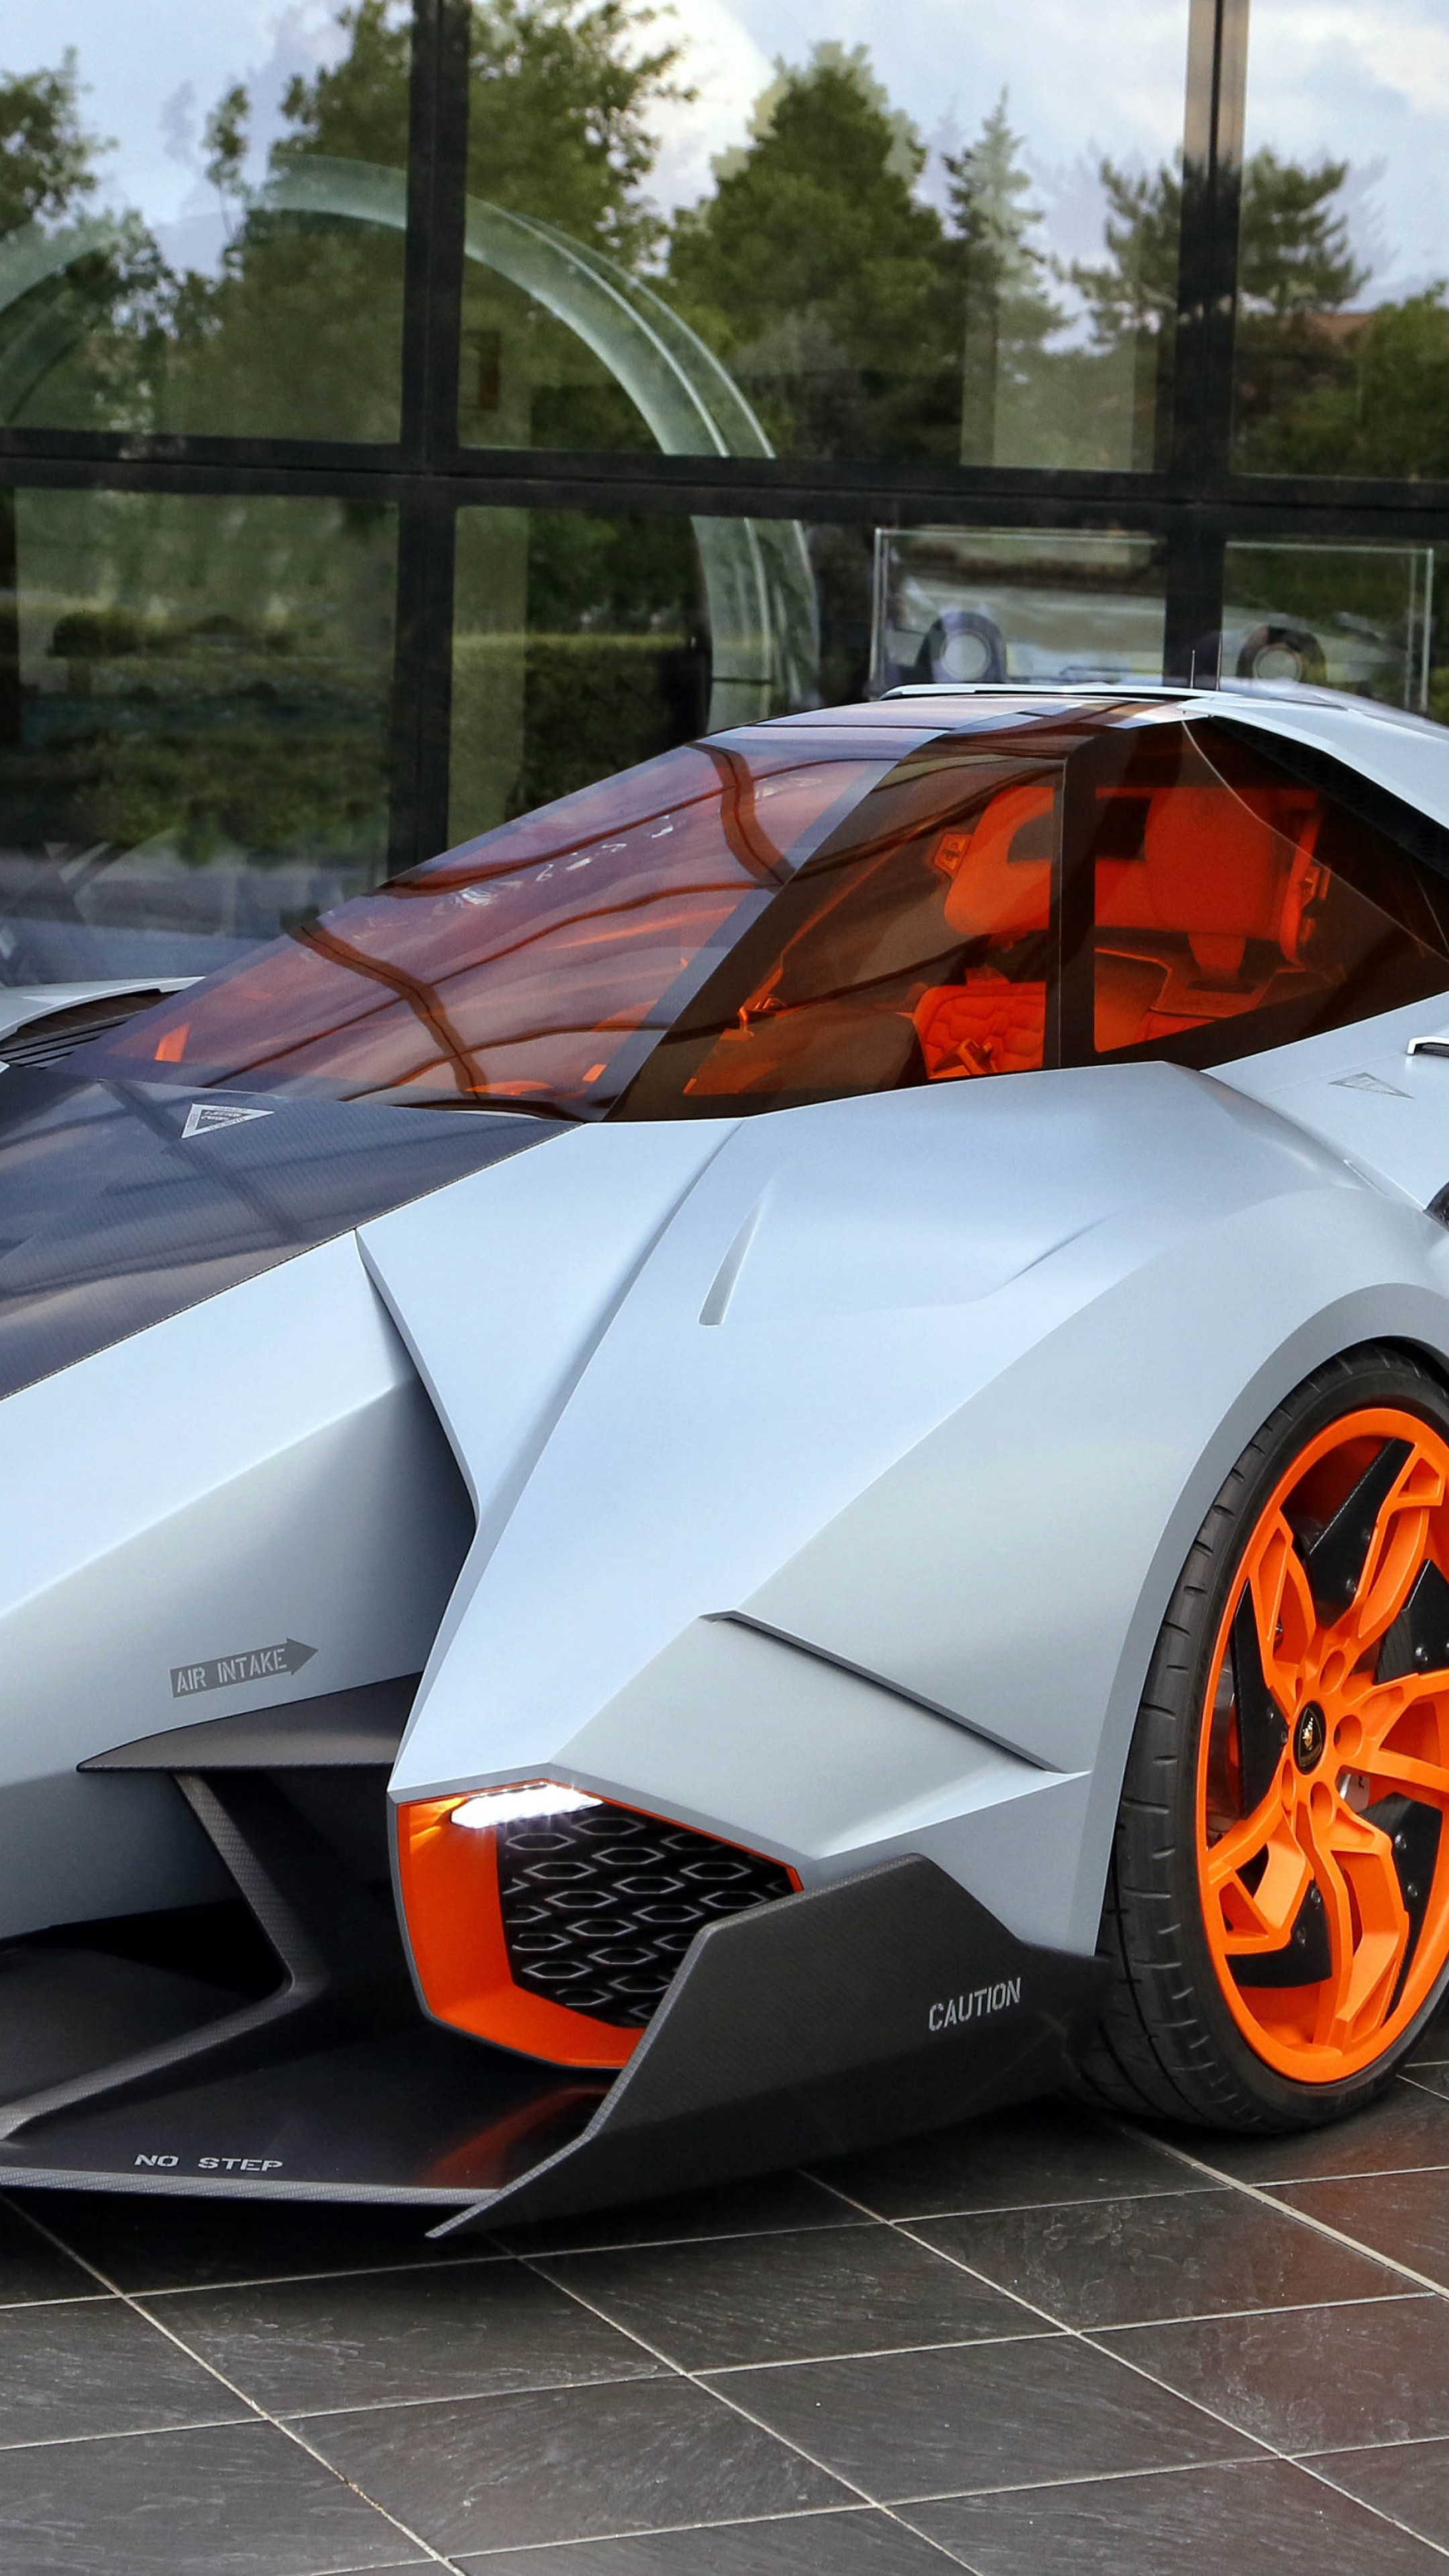 Wallpaper Lamborghini Egoista Supercar Concept HD Wallpapers Download free images and photos [musssic.tk]